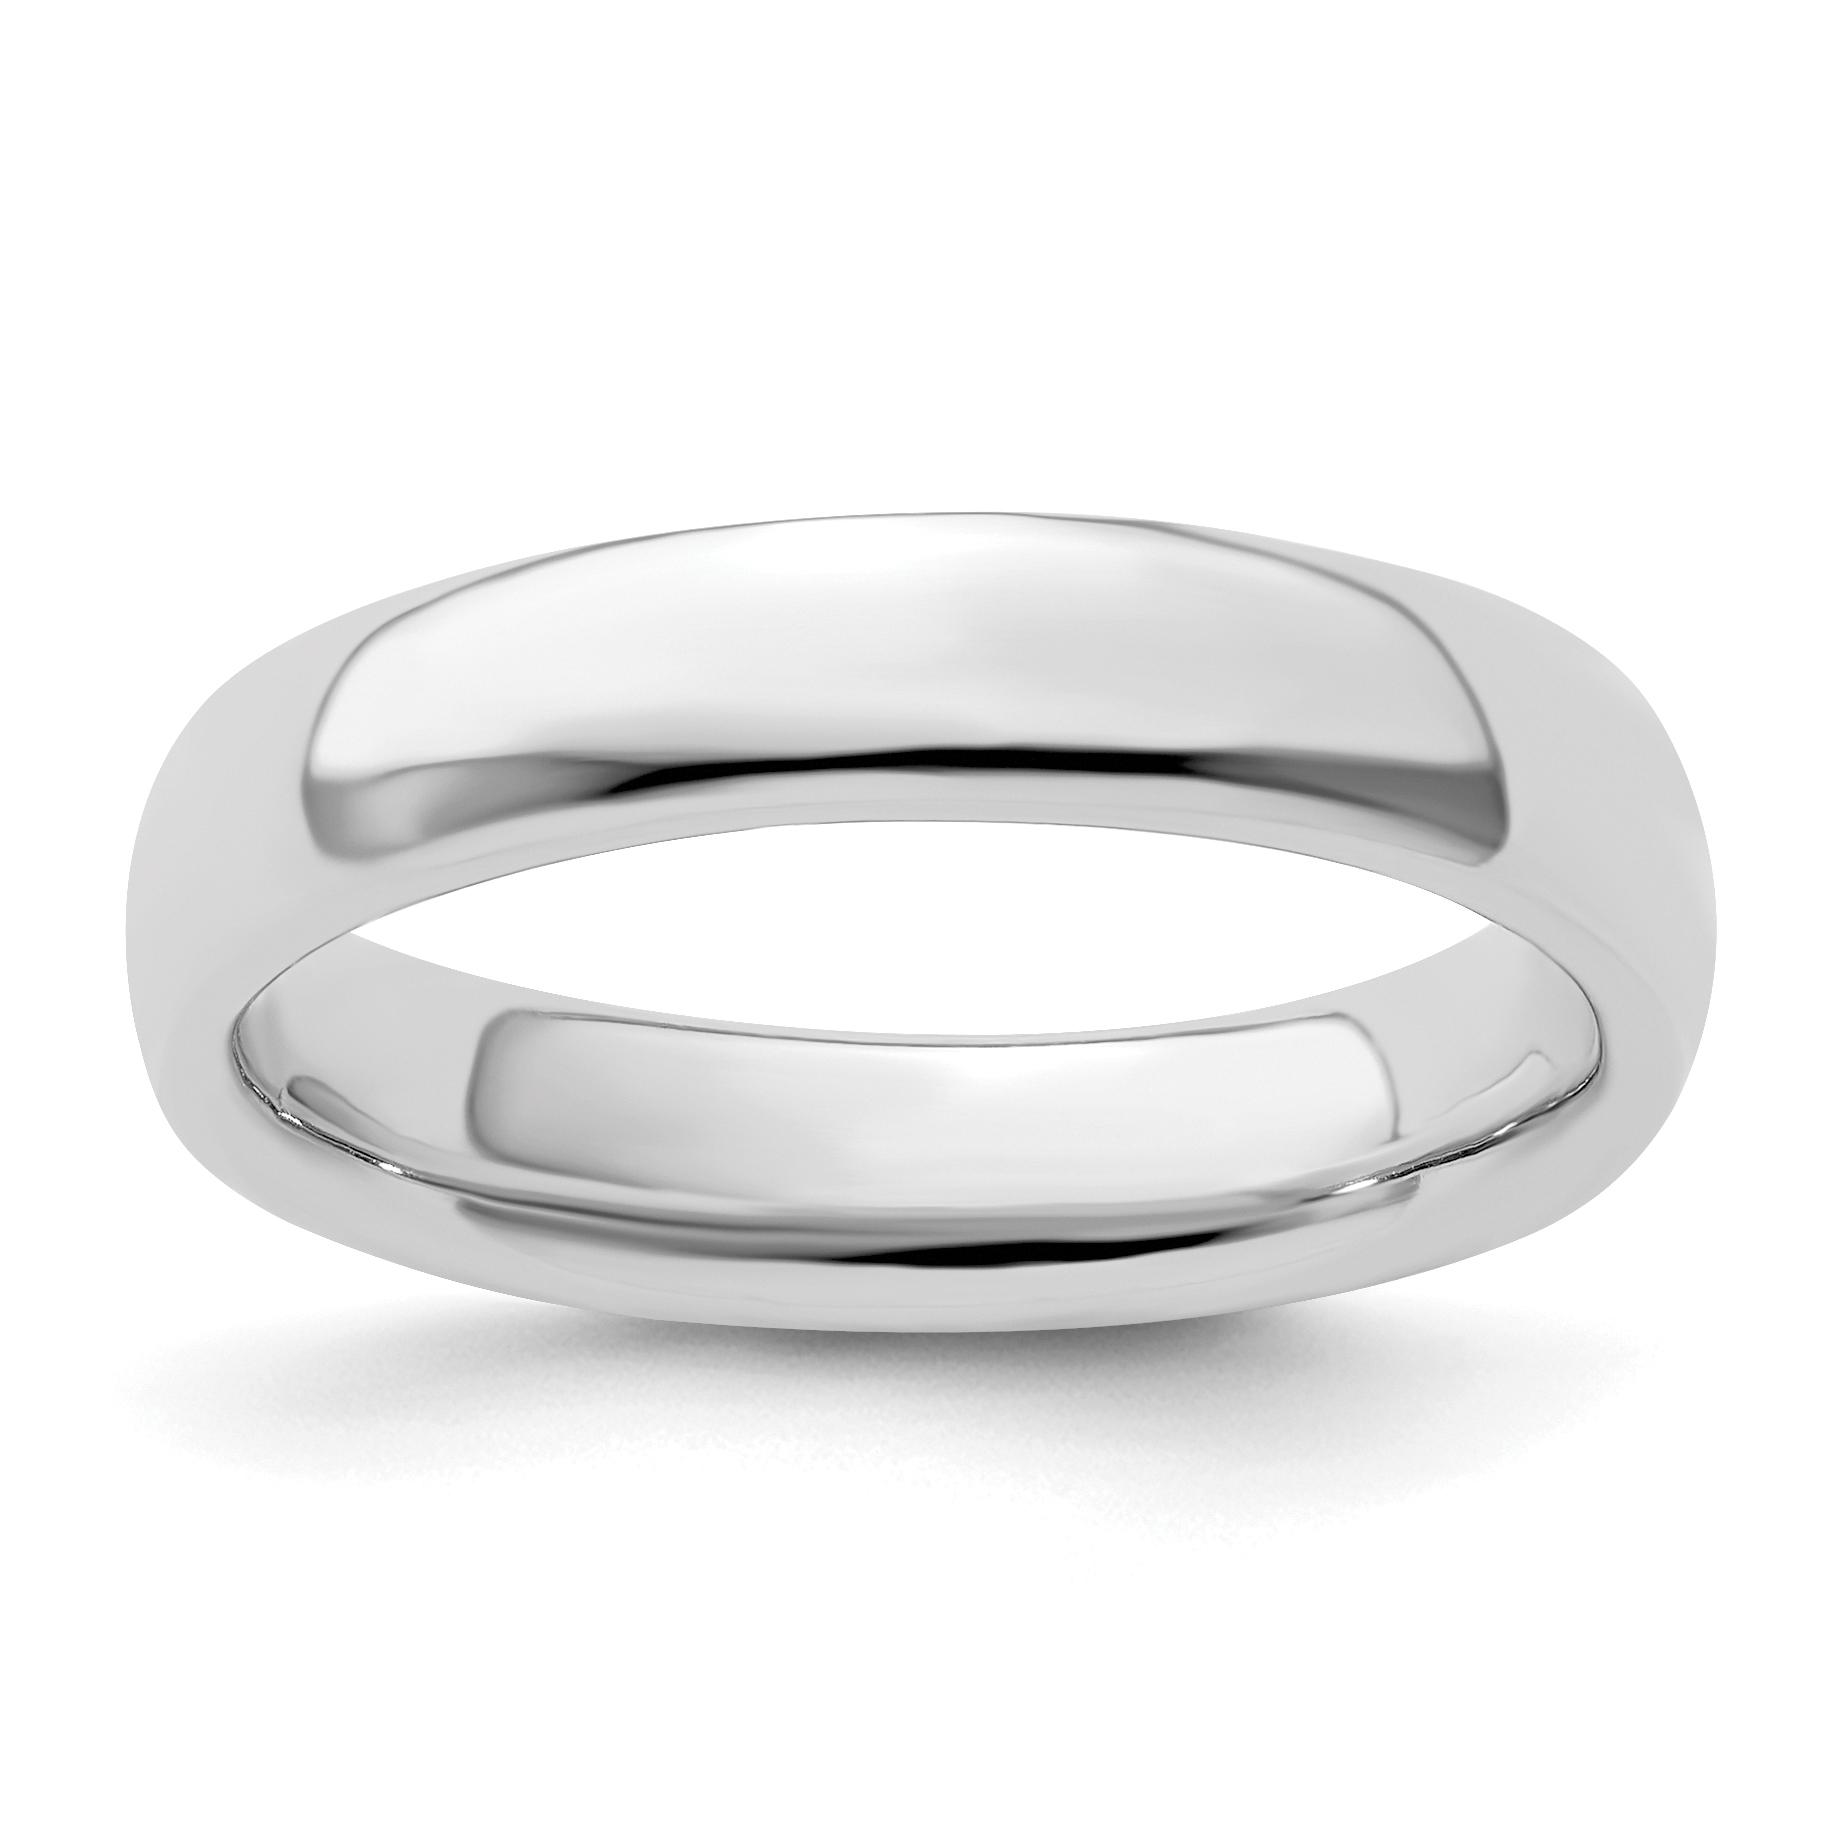 Fashion Jewelry QSK291 Sterling Silver Rhodium Plated 4.50 mm Stackable Ring